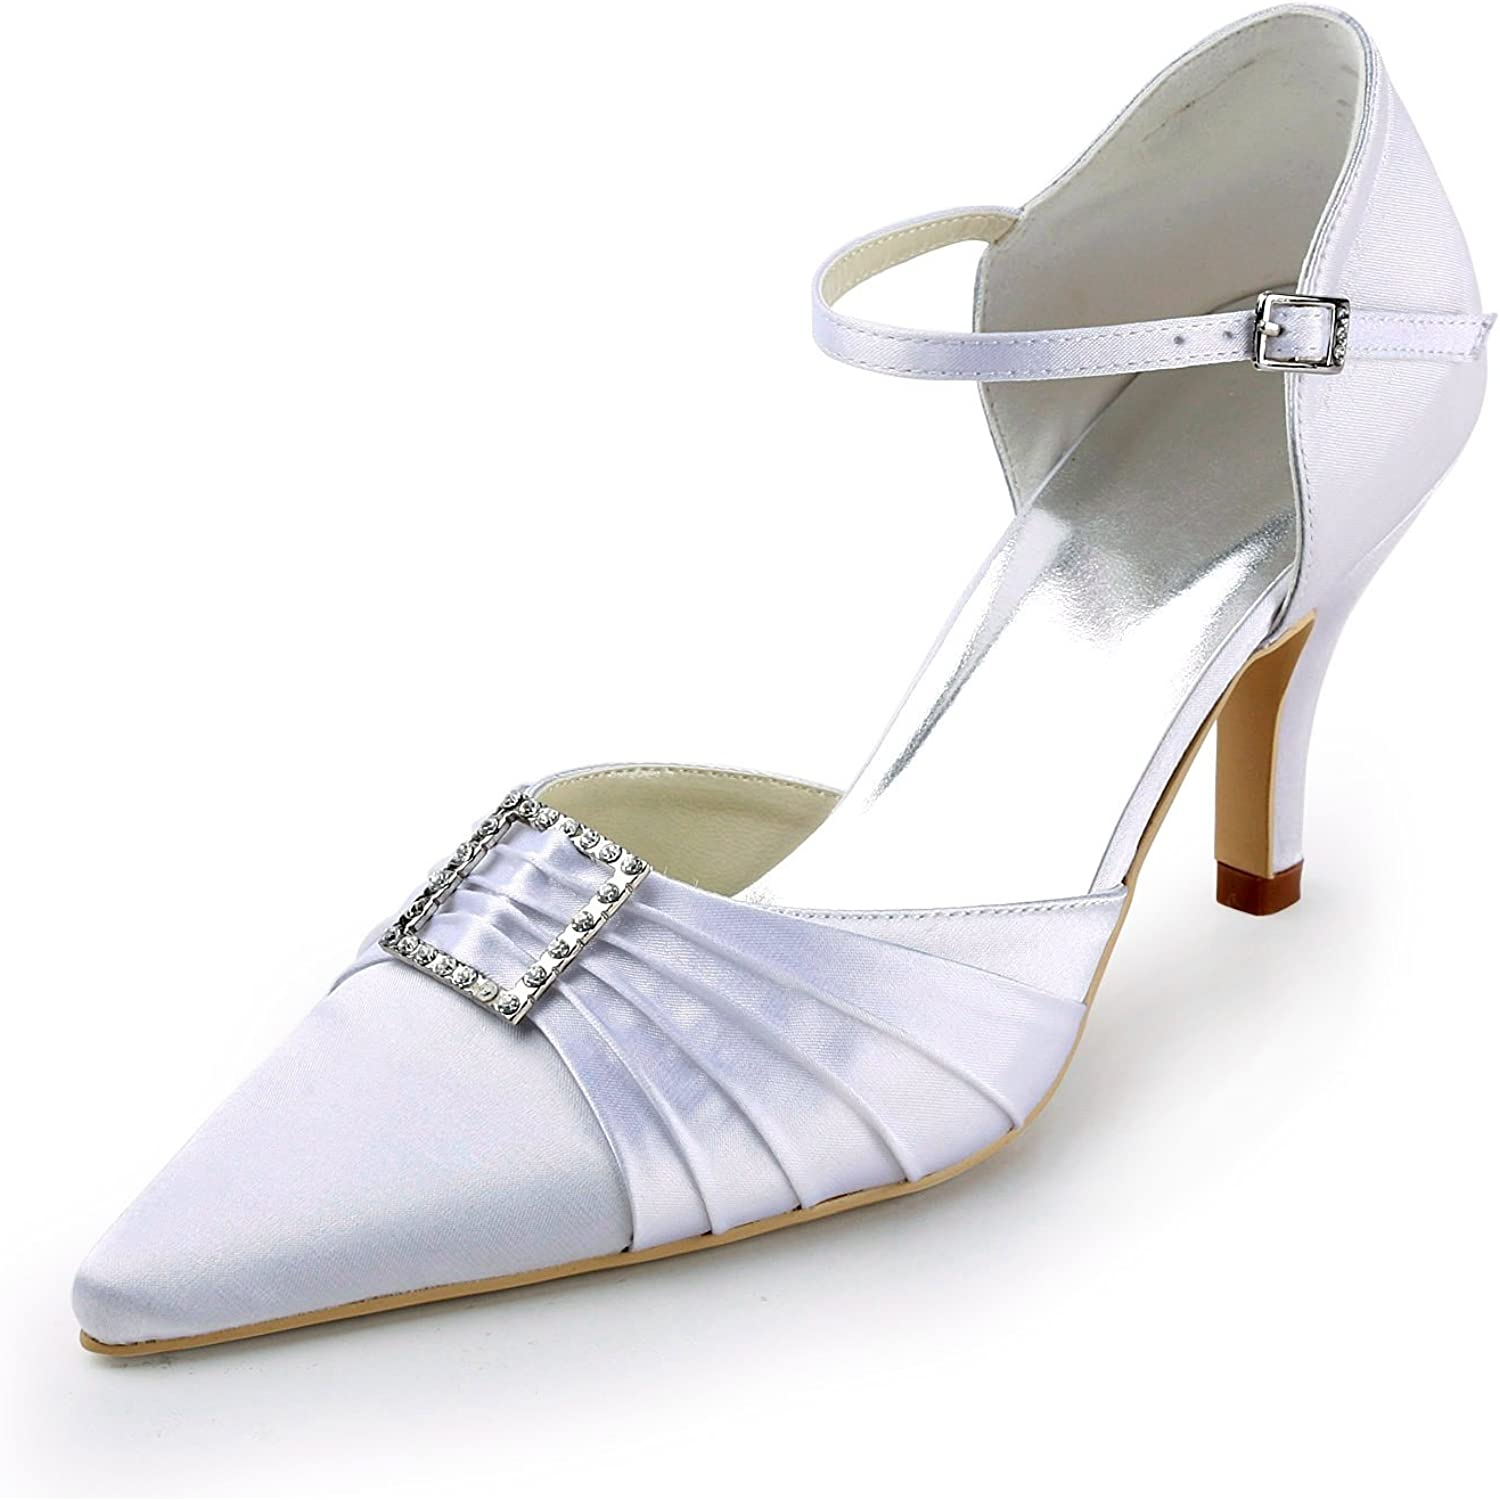 Minishion TMZ341 Women's Stylish Satin Bridal Wedding Evening Formal Party Pumps shoes